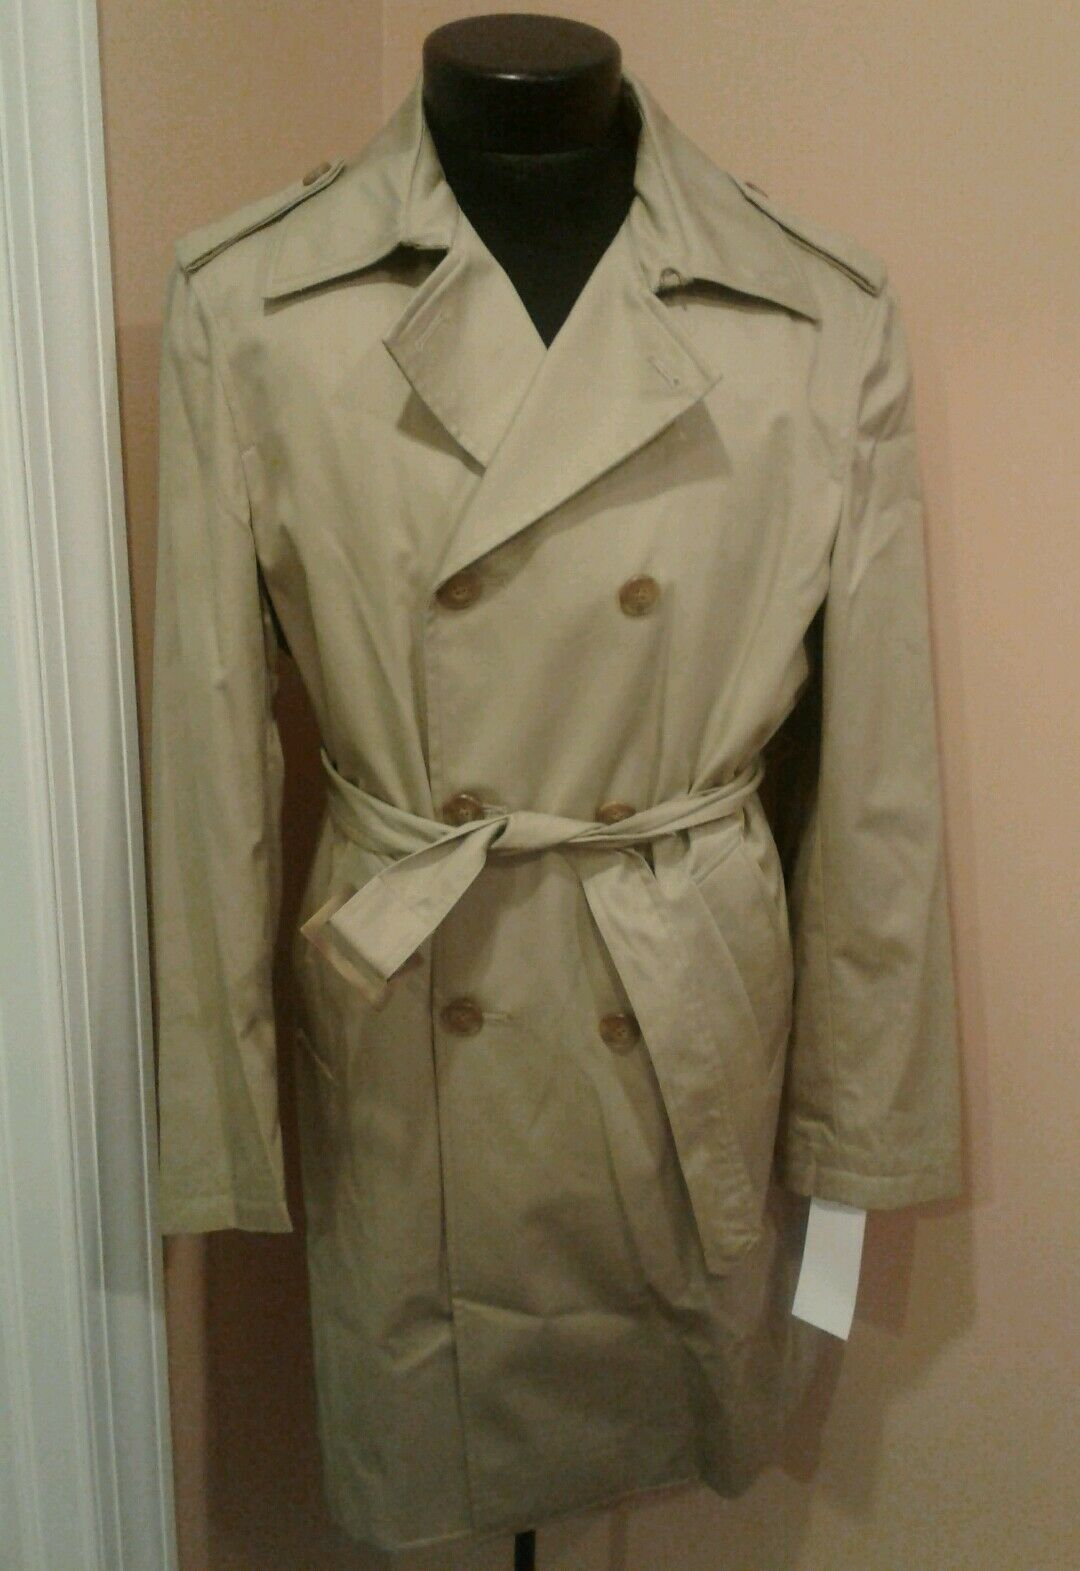 BNWT PERRY ELLIS Tan Rain Coat Trench Classic 38R new